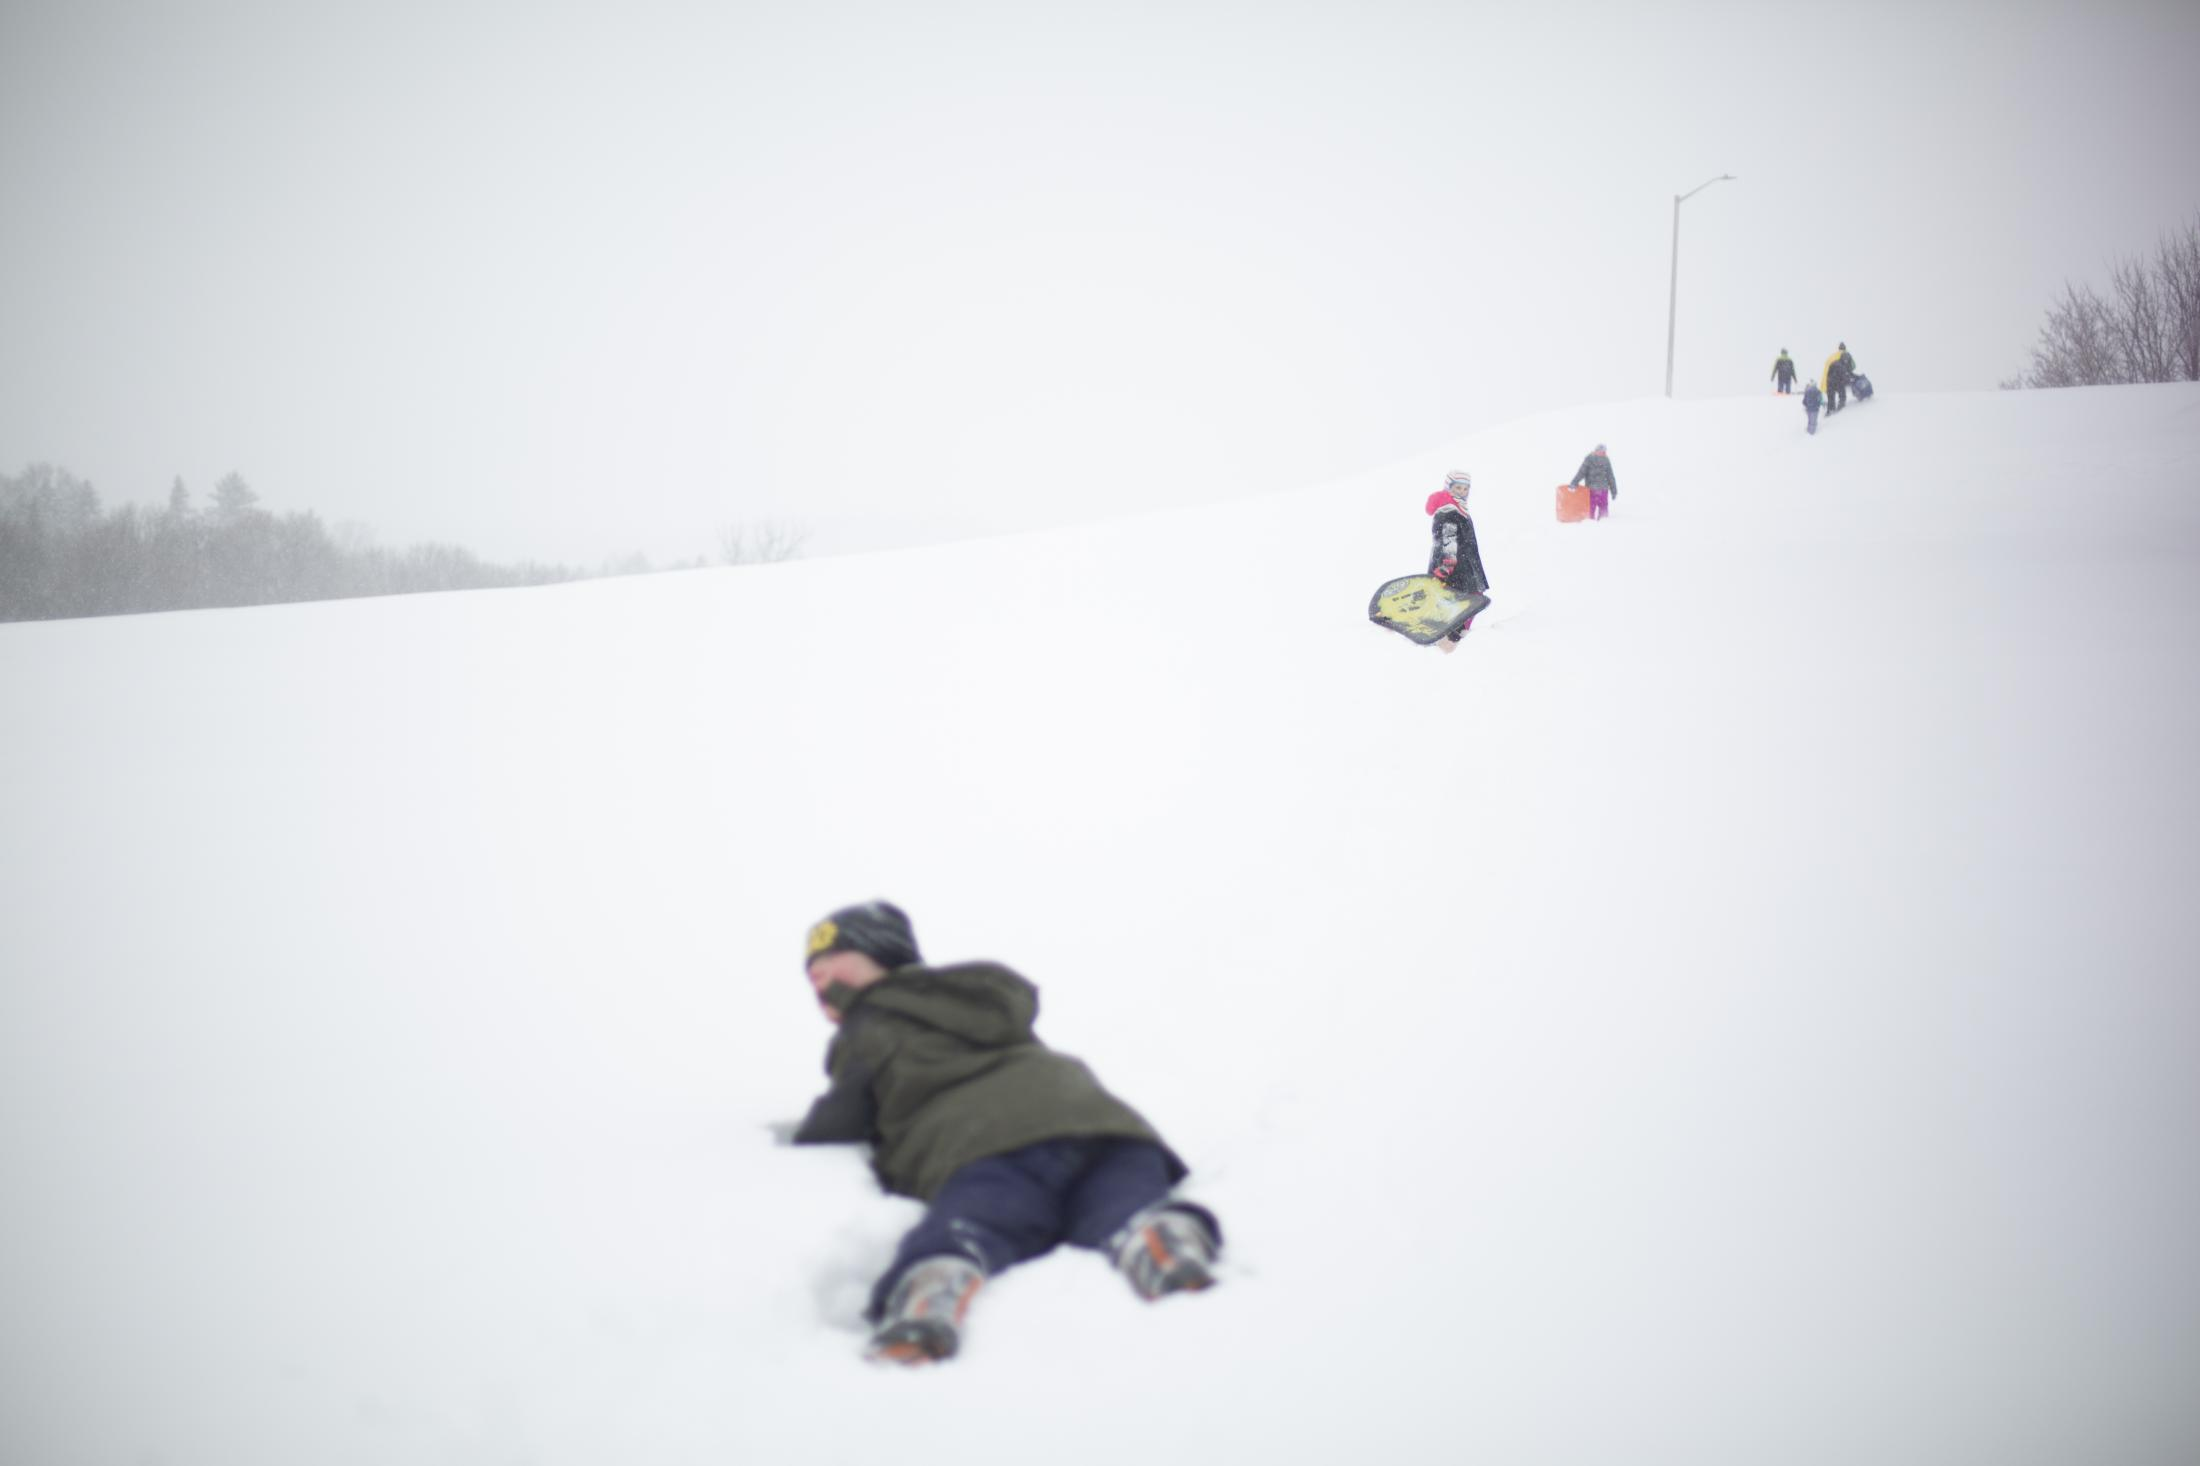 The trek to find the perfect sledding hill takes awhile and a few falls, but according to Liesl it is always worth it.